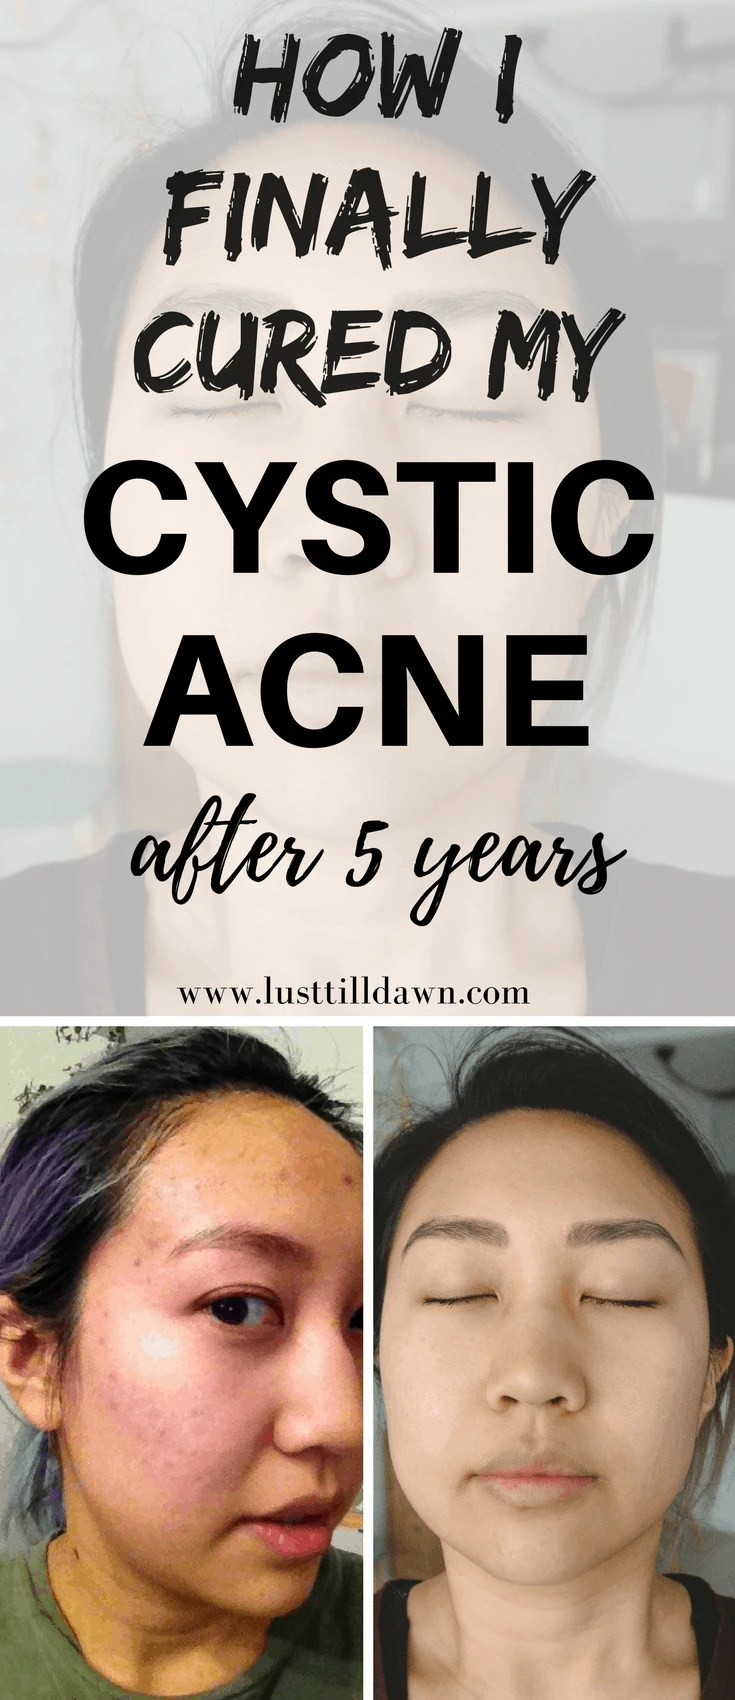 How I Cured My Cystic Acne by Discovering Food Allergies and